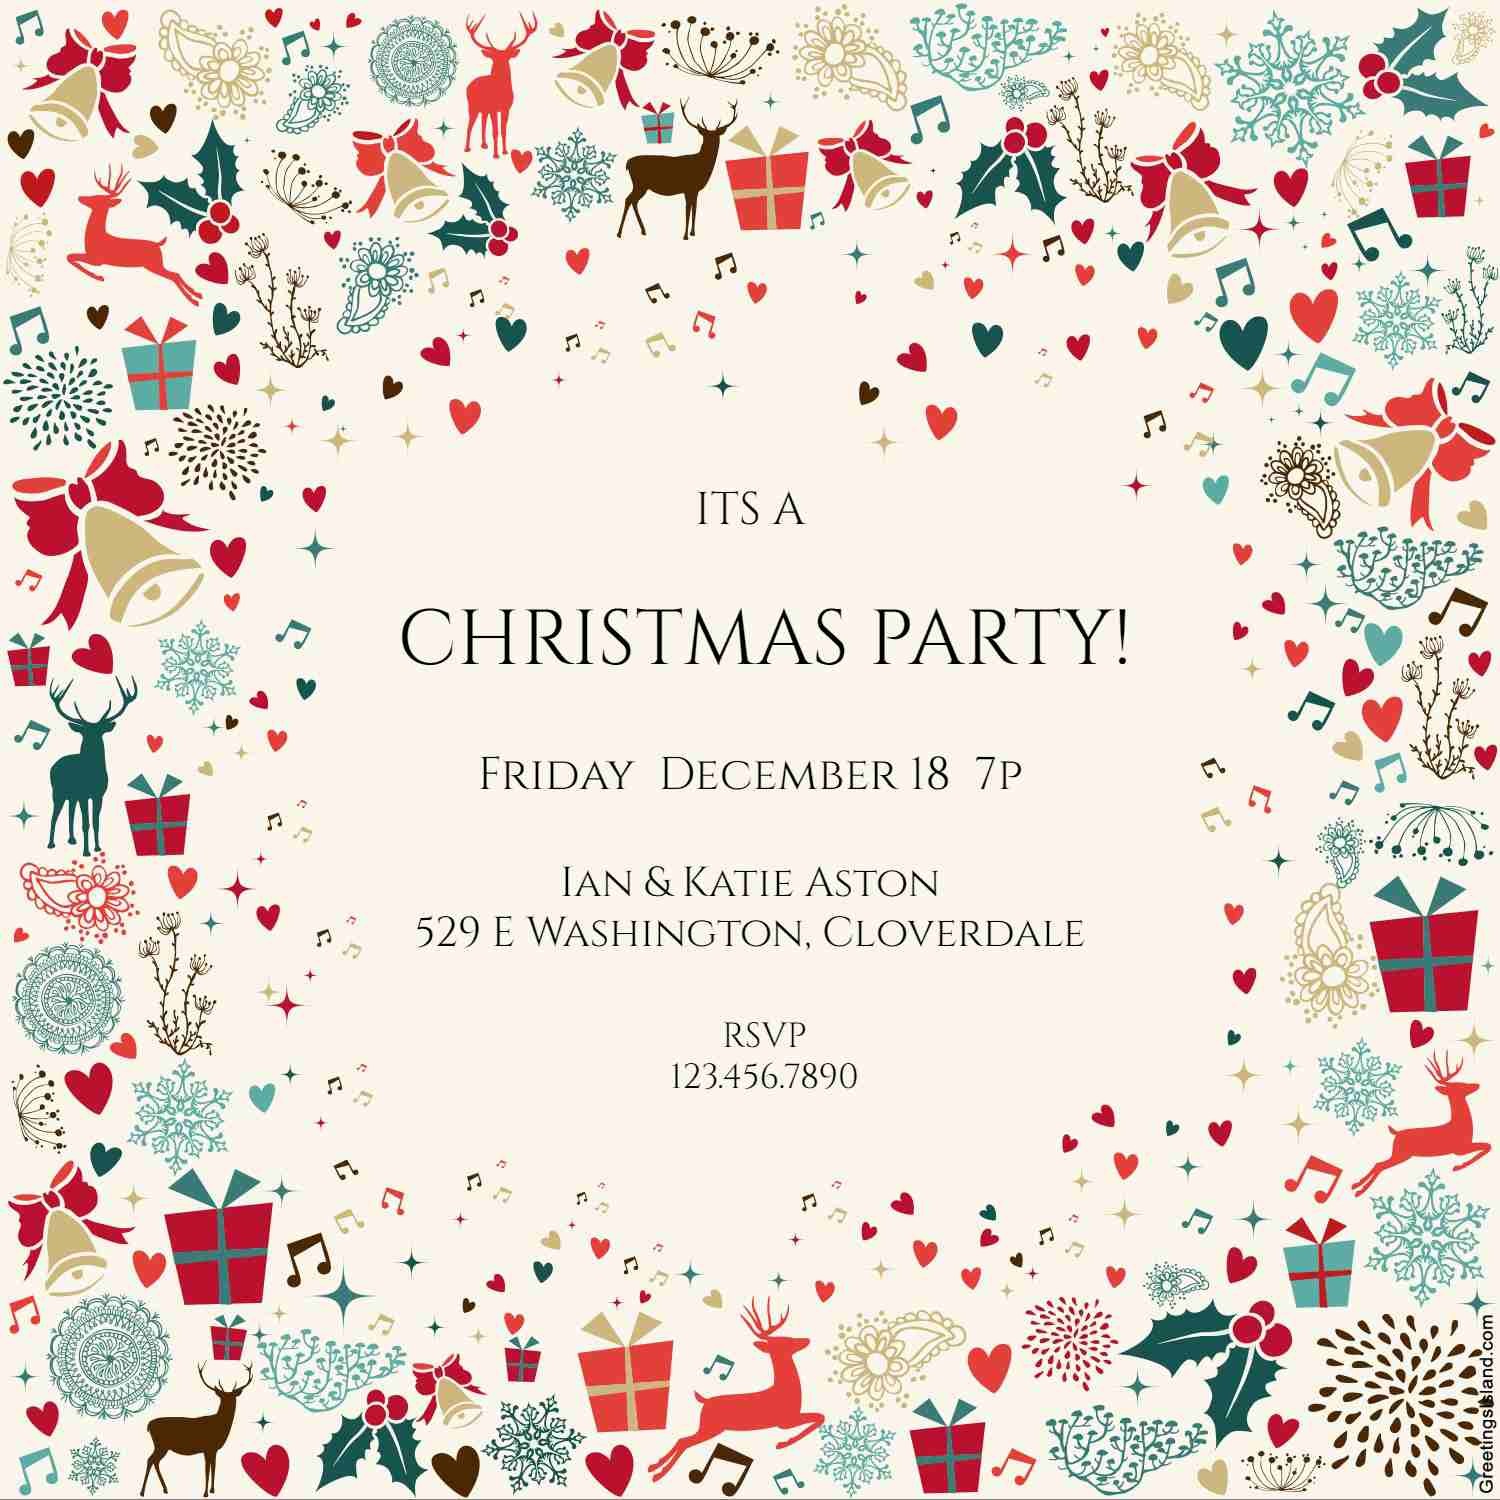 12 Free Christmas Party Invitations That You Can Print